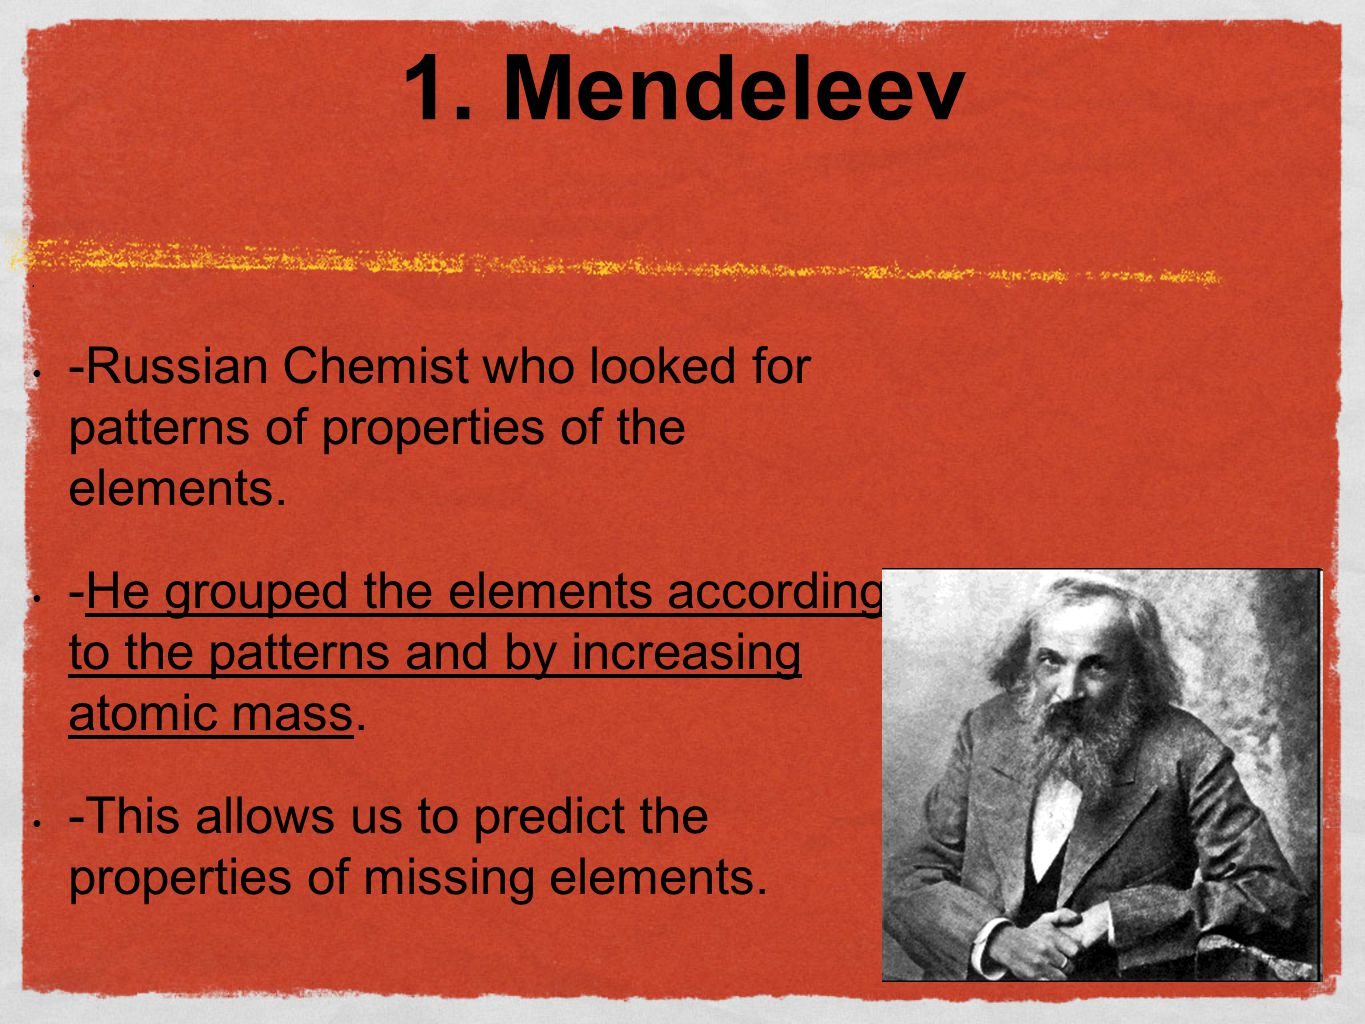 1. Mendeleev -Russian Chemist who looked for patterns of properties of the elements.